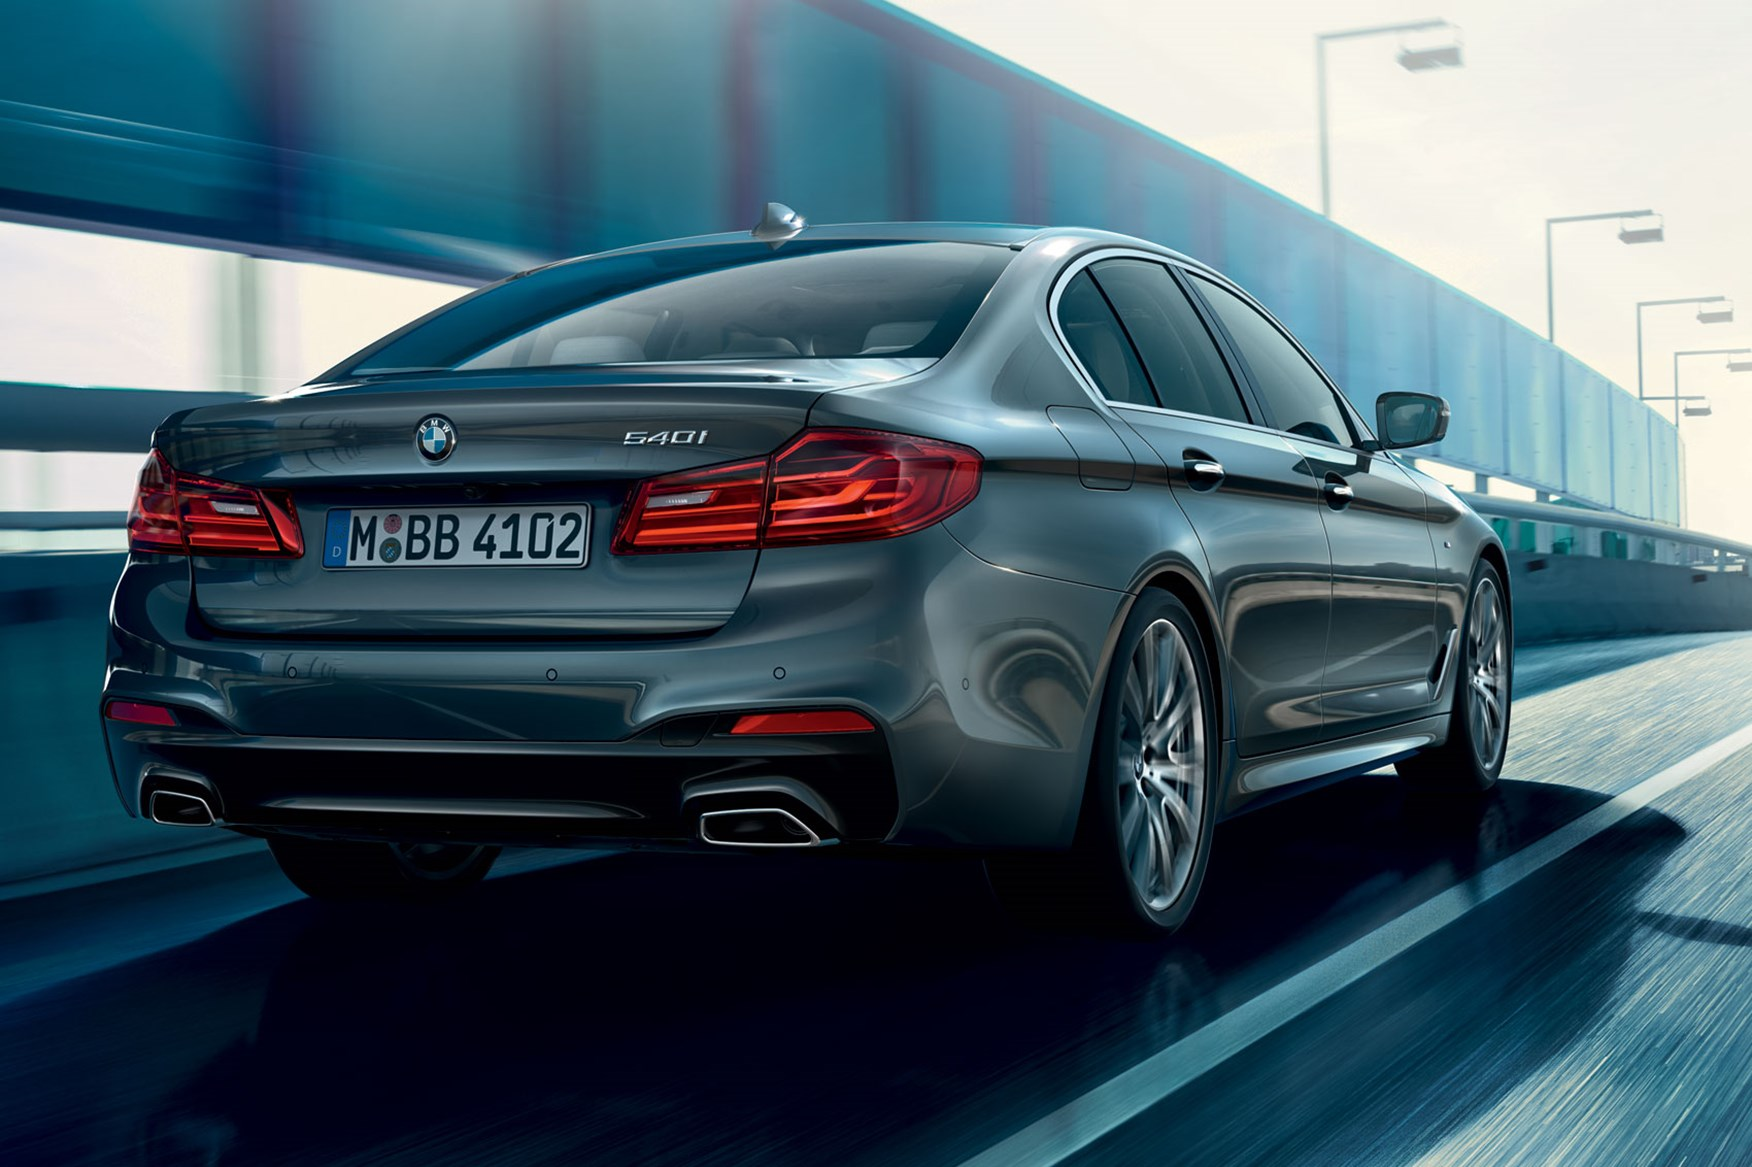 New 2017 Bmw 5 Series Revealed Lighter Quicker More Advanced By Car Magazine